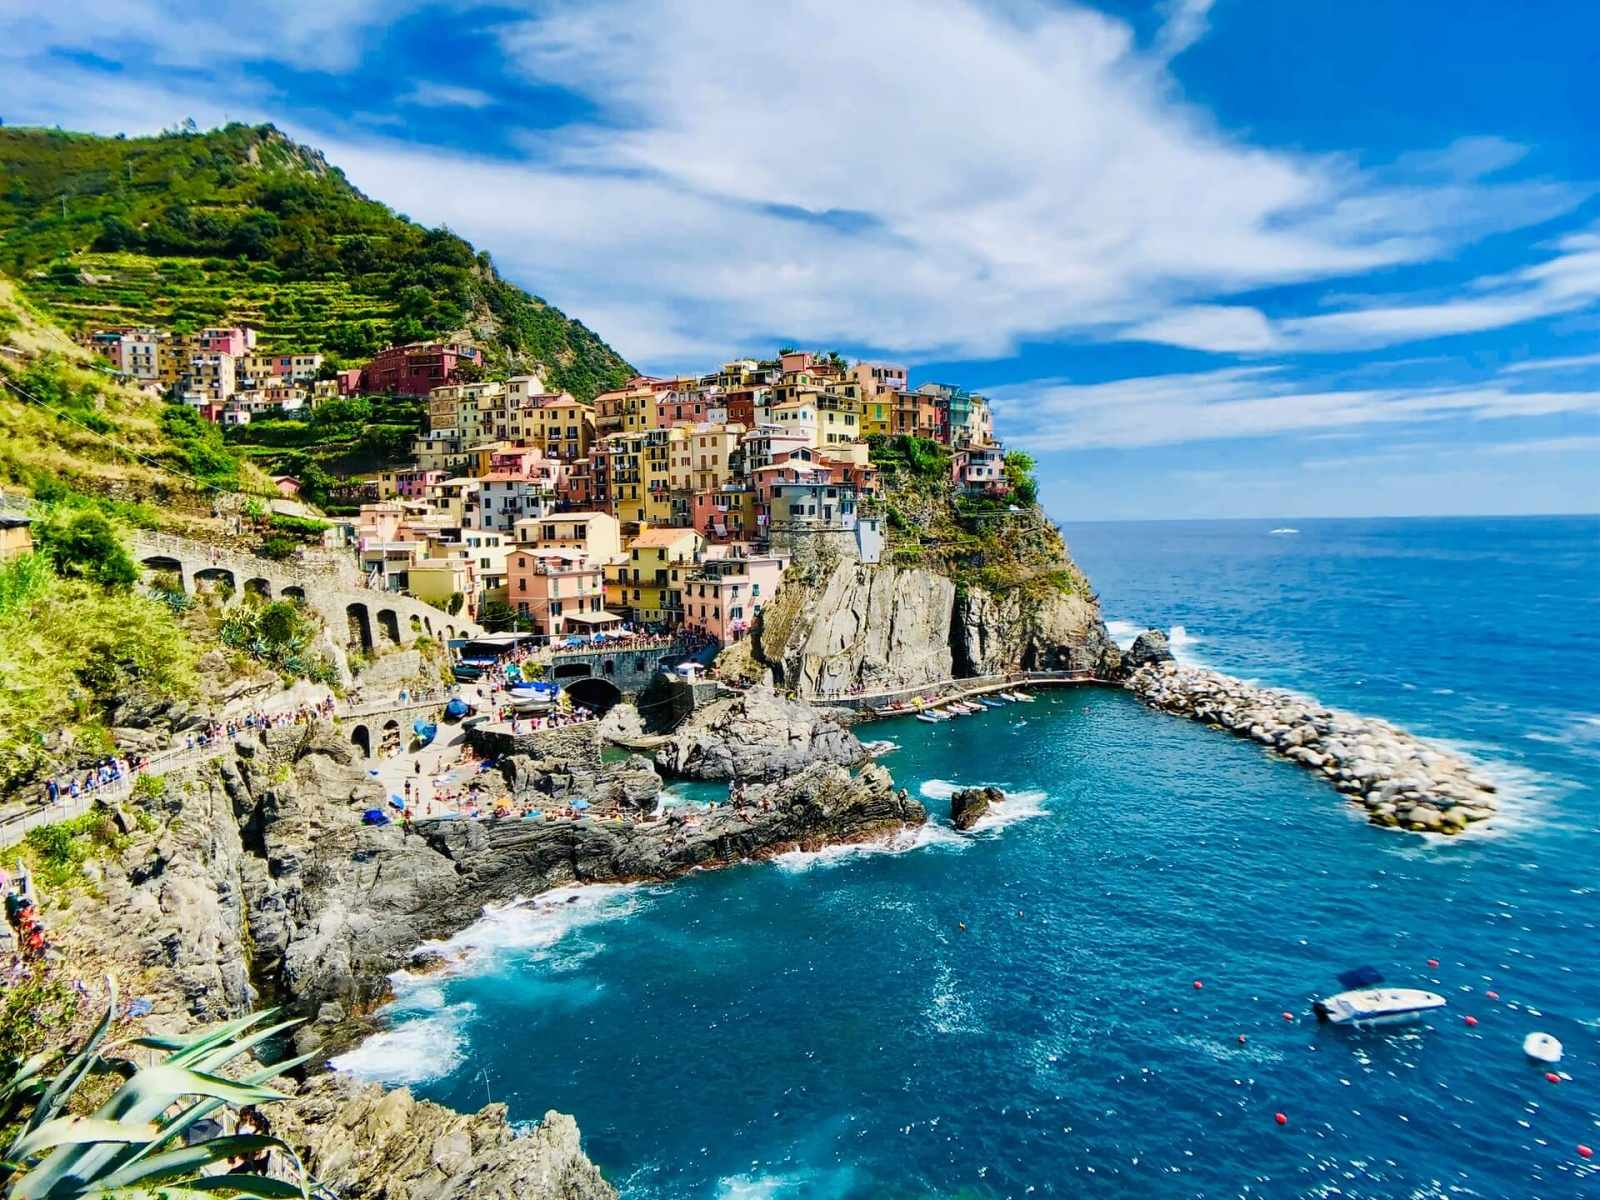 Cinque Terre stunning views of the peninsula